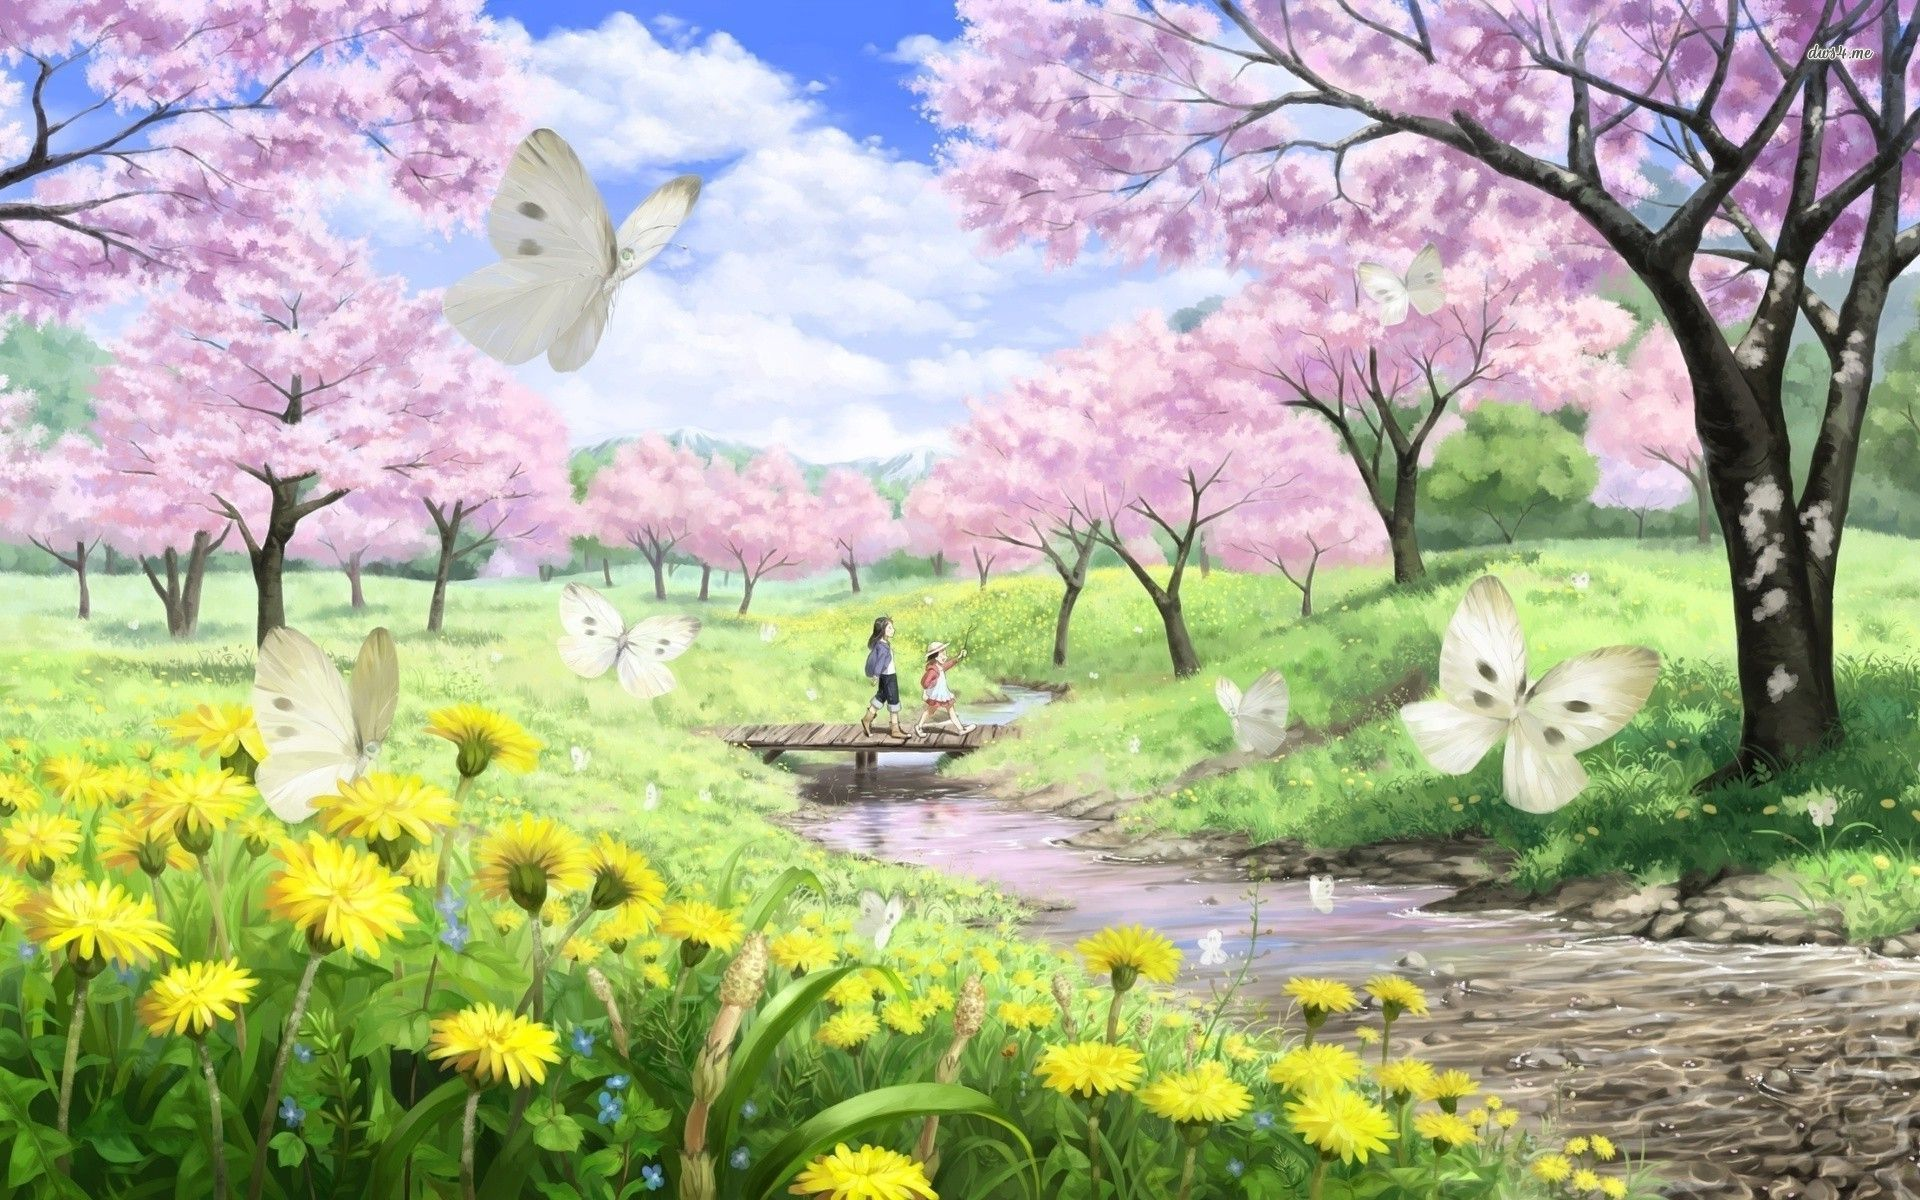 Nature Spring Wallpaper For Desktop